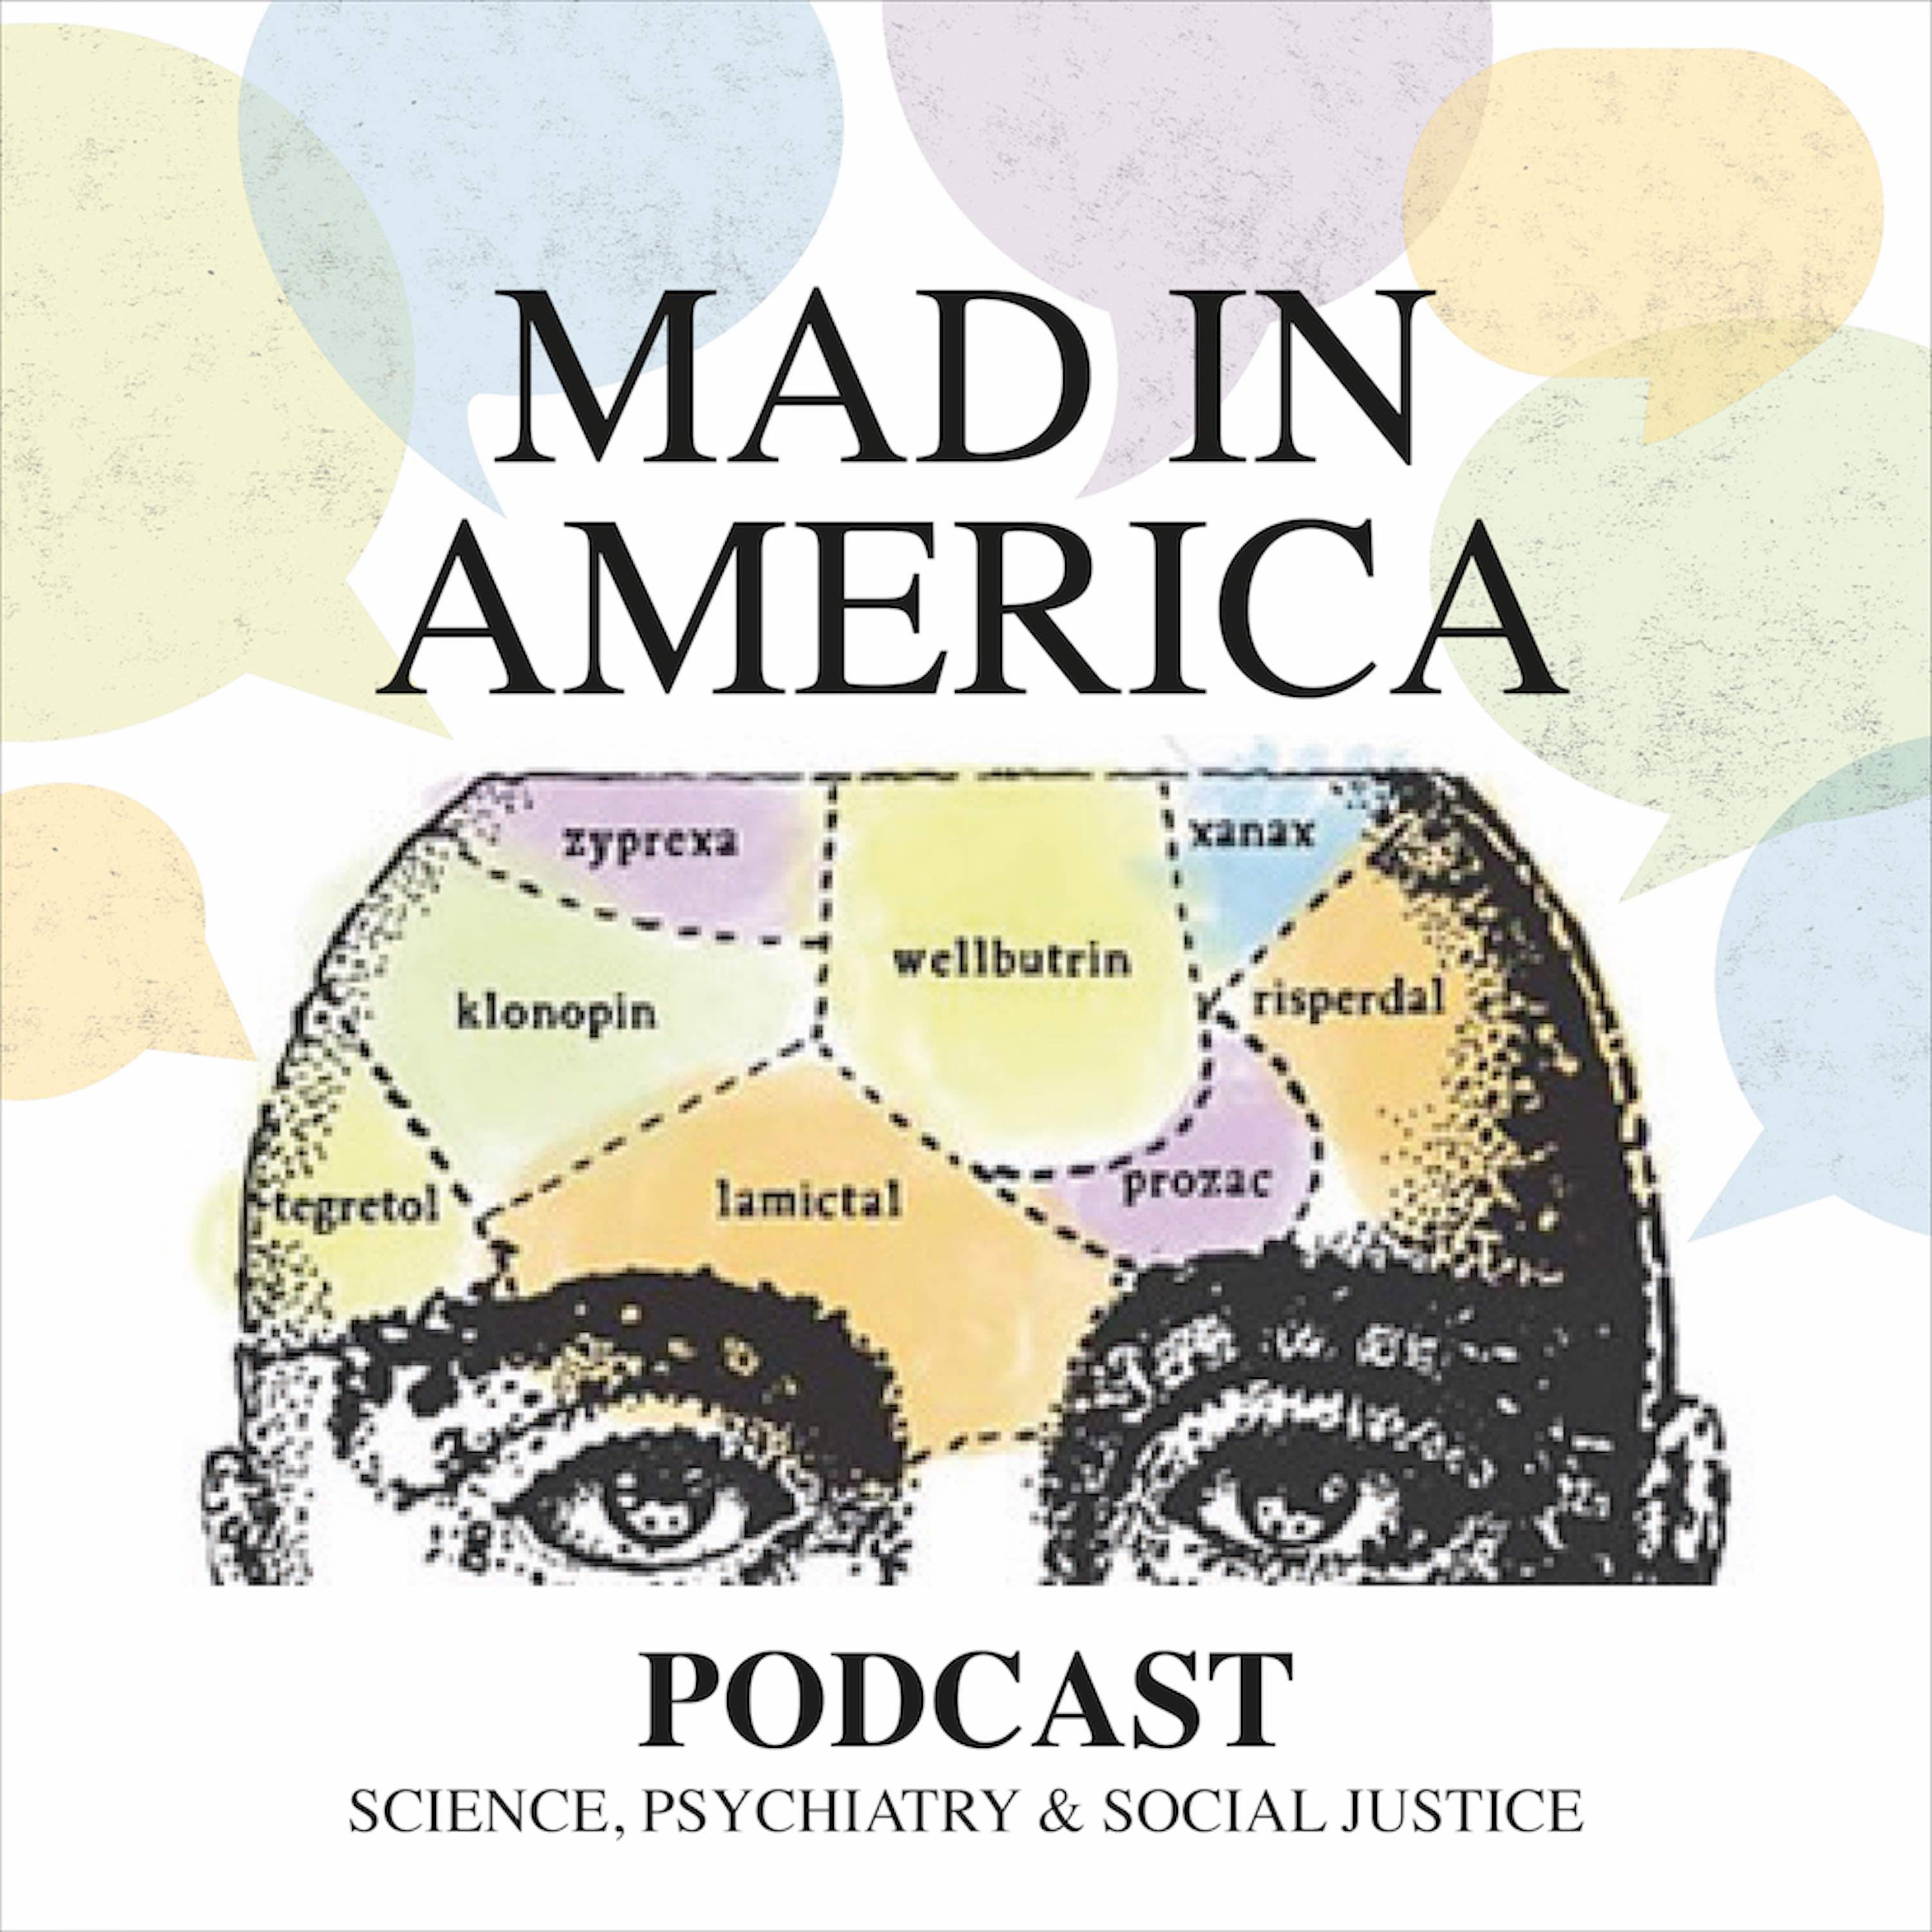 Mad in America: Rethinking Mental Health - Peter Kinderman - Why We Need a Revolution in Mental Health Care